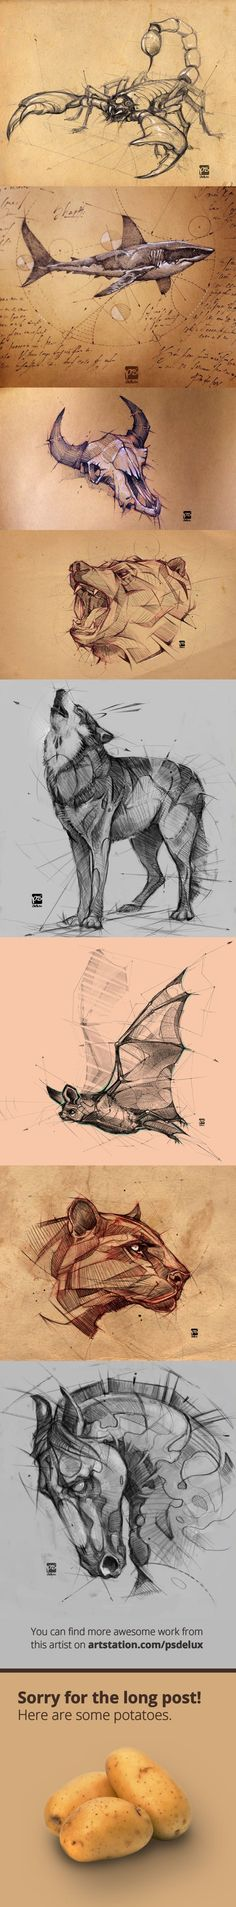 Draw Animals Check out these awesome drawings from psdelux: - More memes, funny videos and pics on Animal Sketches, Animal Drawings, Drawing Sketches, Pencil Drawings, Awesome Drawings, Art Drawings, Sketching, Drawing People, Art Inspo